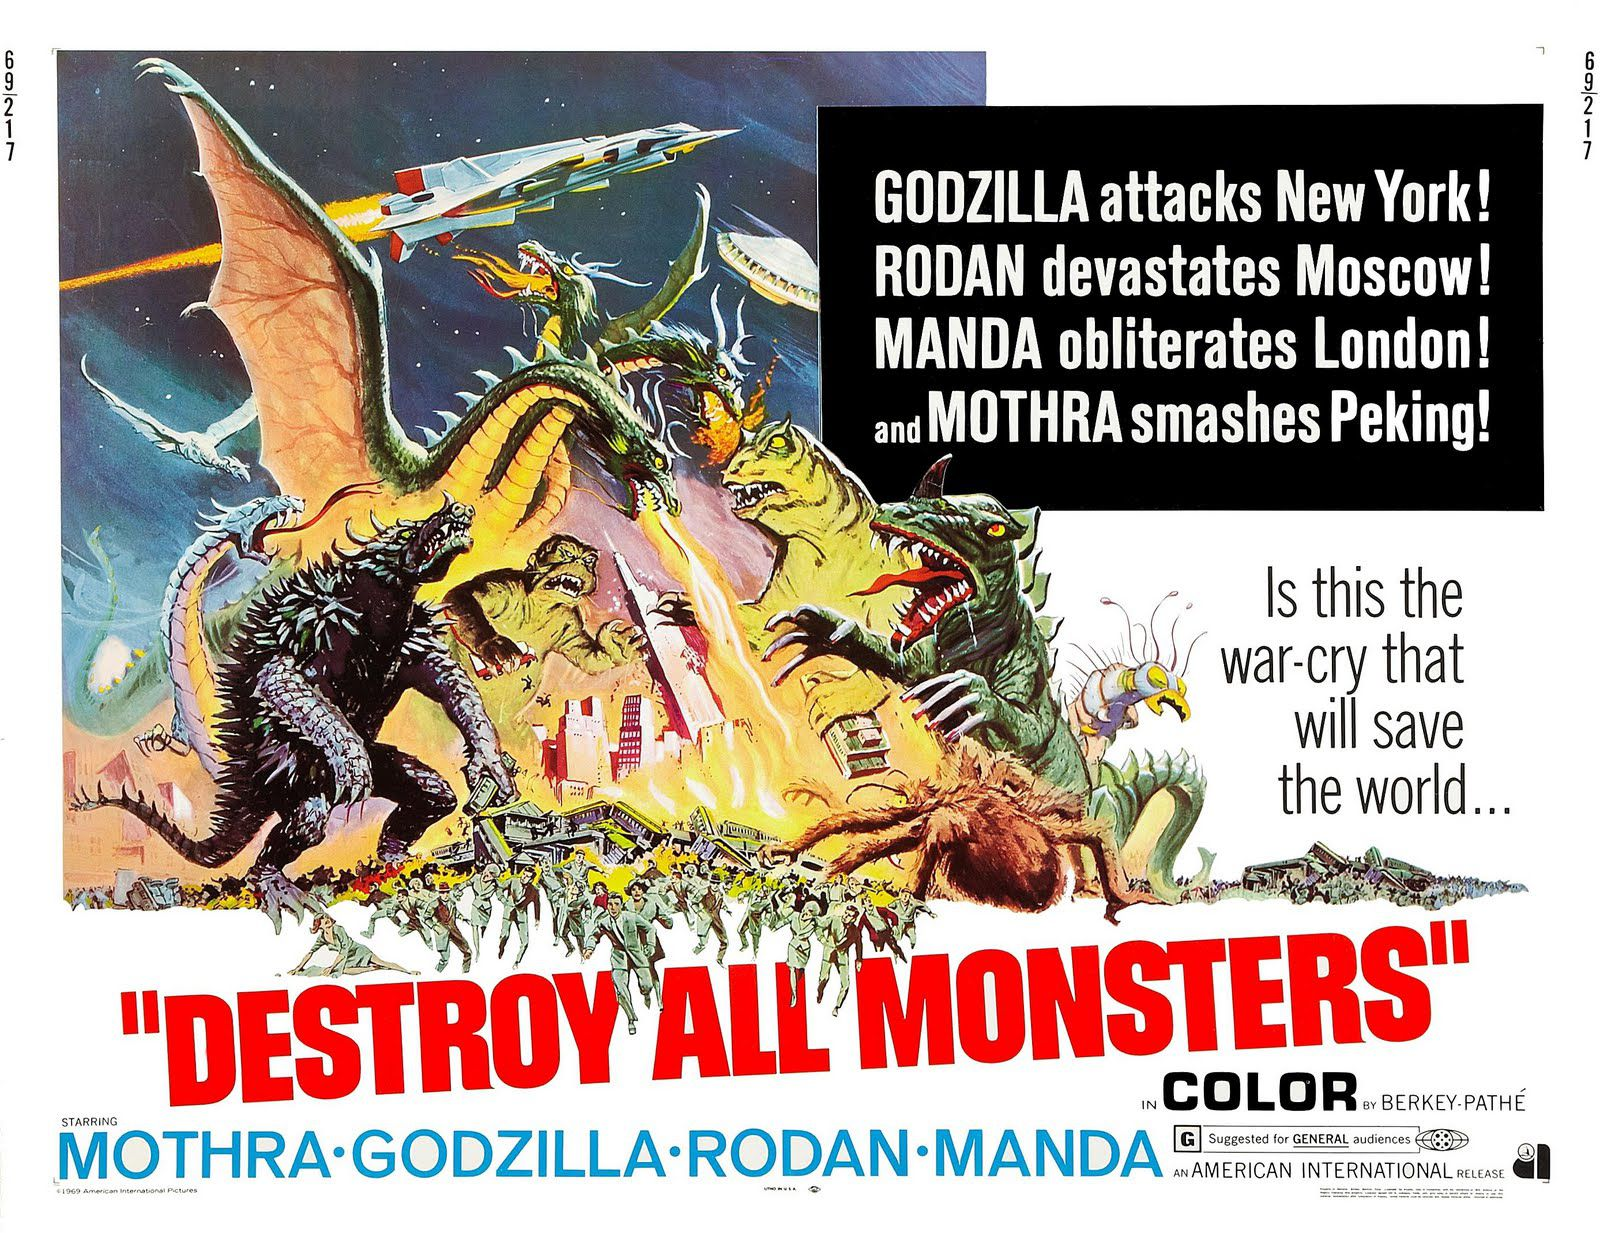 Blaise's Bad Movie Guide: 'Destory All Monsters'